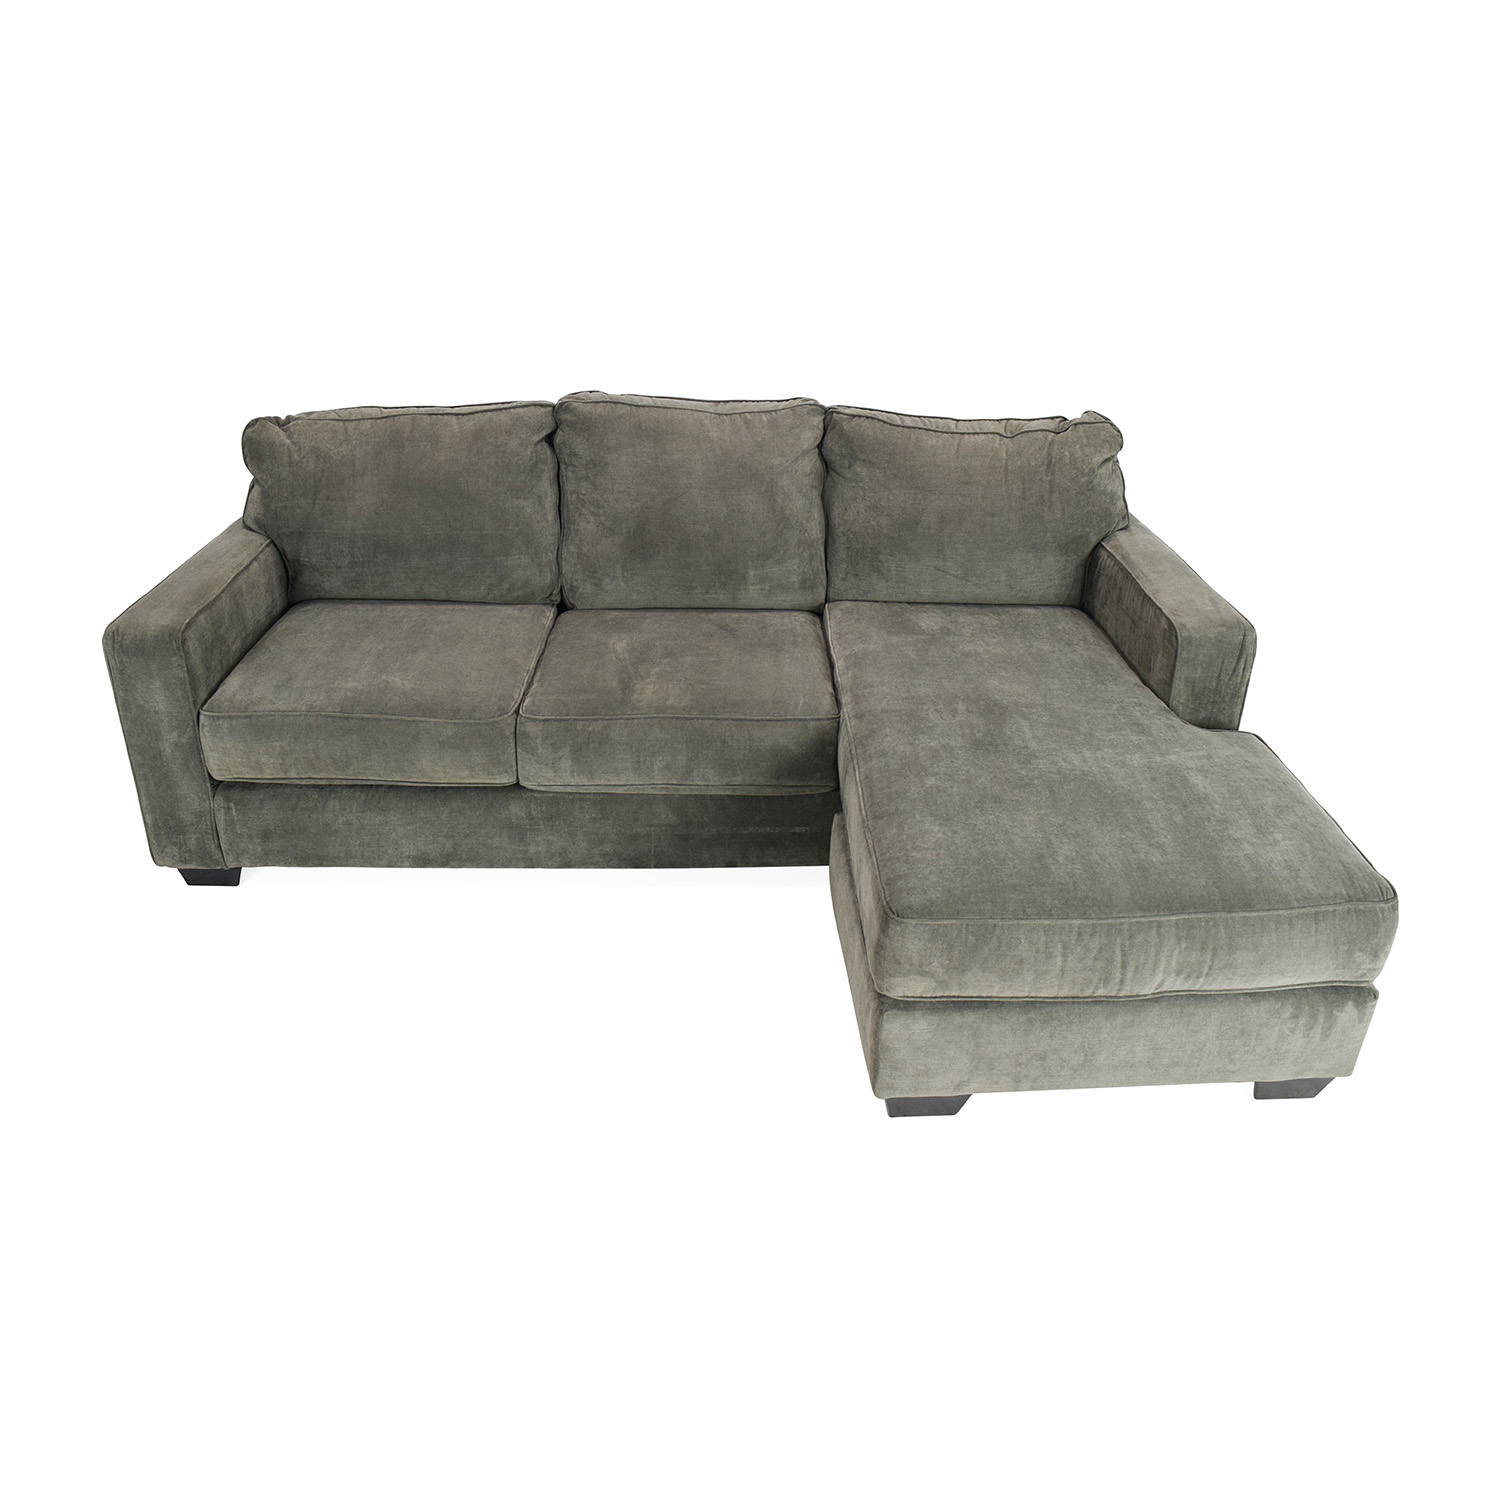 jennifer convertible sofas on sale southern motion reclining console sofa 54 off convertibles